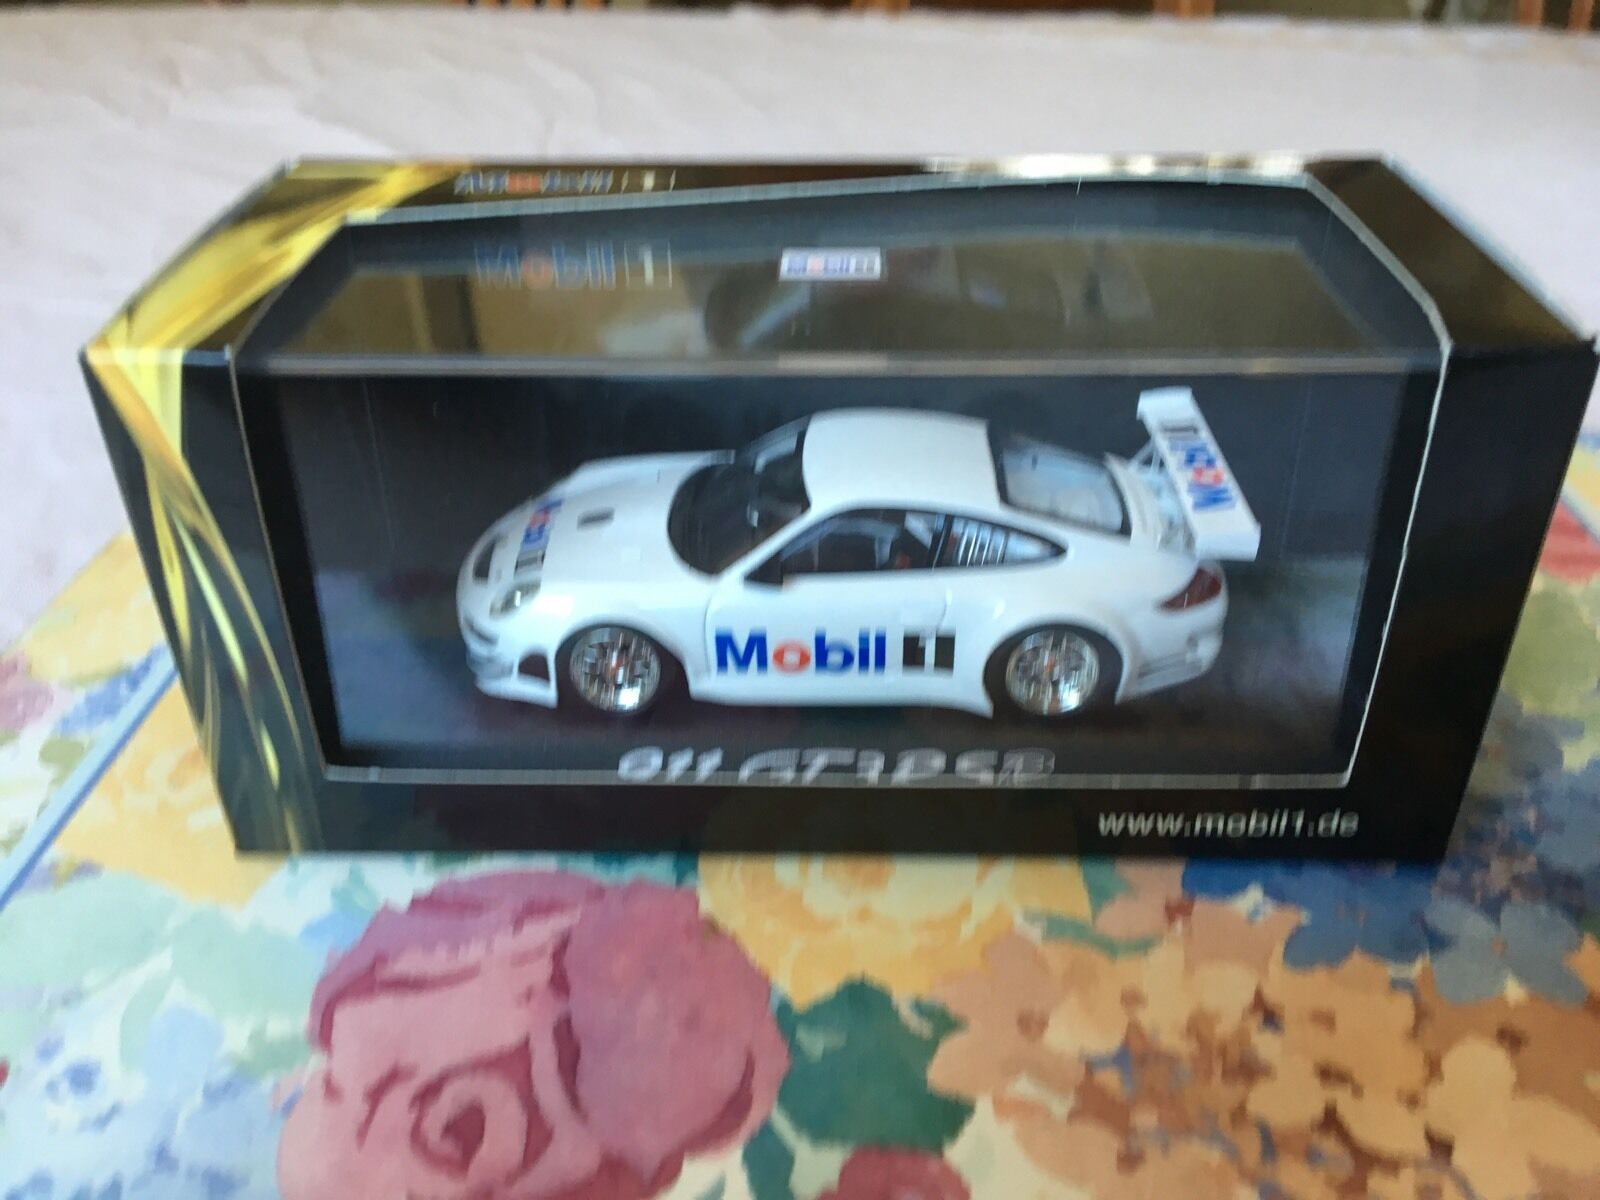 Minichamps Porsche 911 GT3 RSR, Mobil Car   1. Promotional Car In 1 43 scale